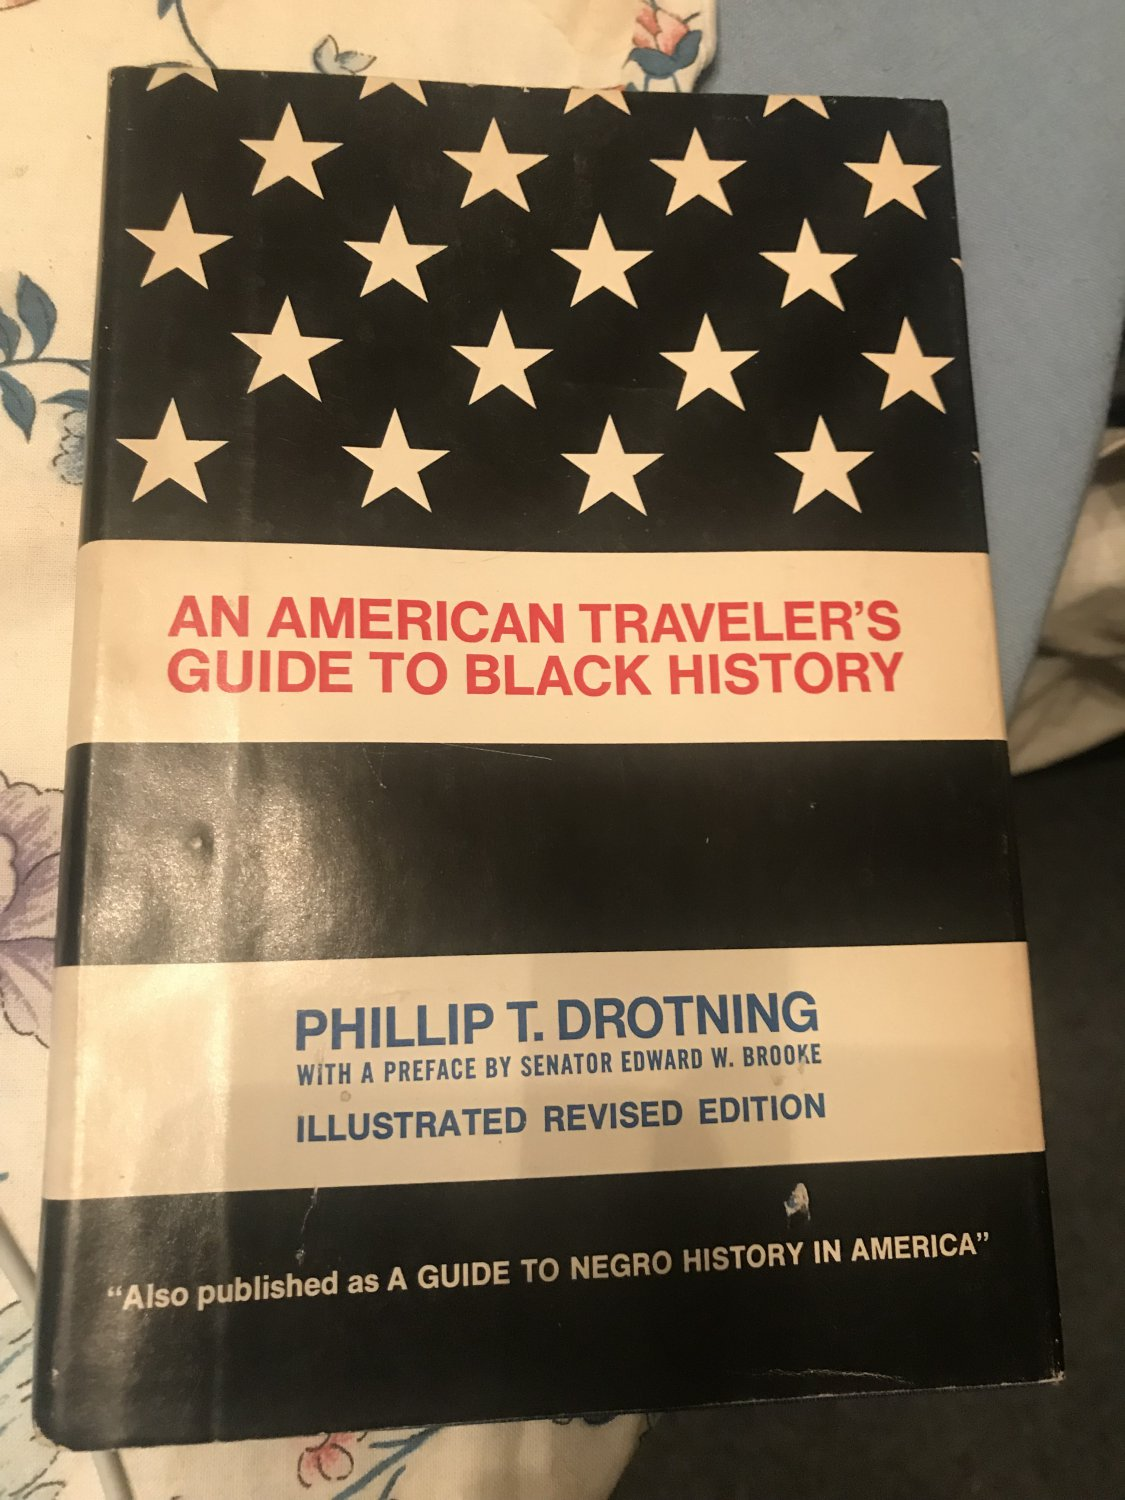 An American Traveler's Guide To Black History Hardcover � 1968 by Phillip T. Drotning